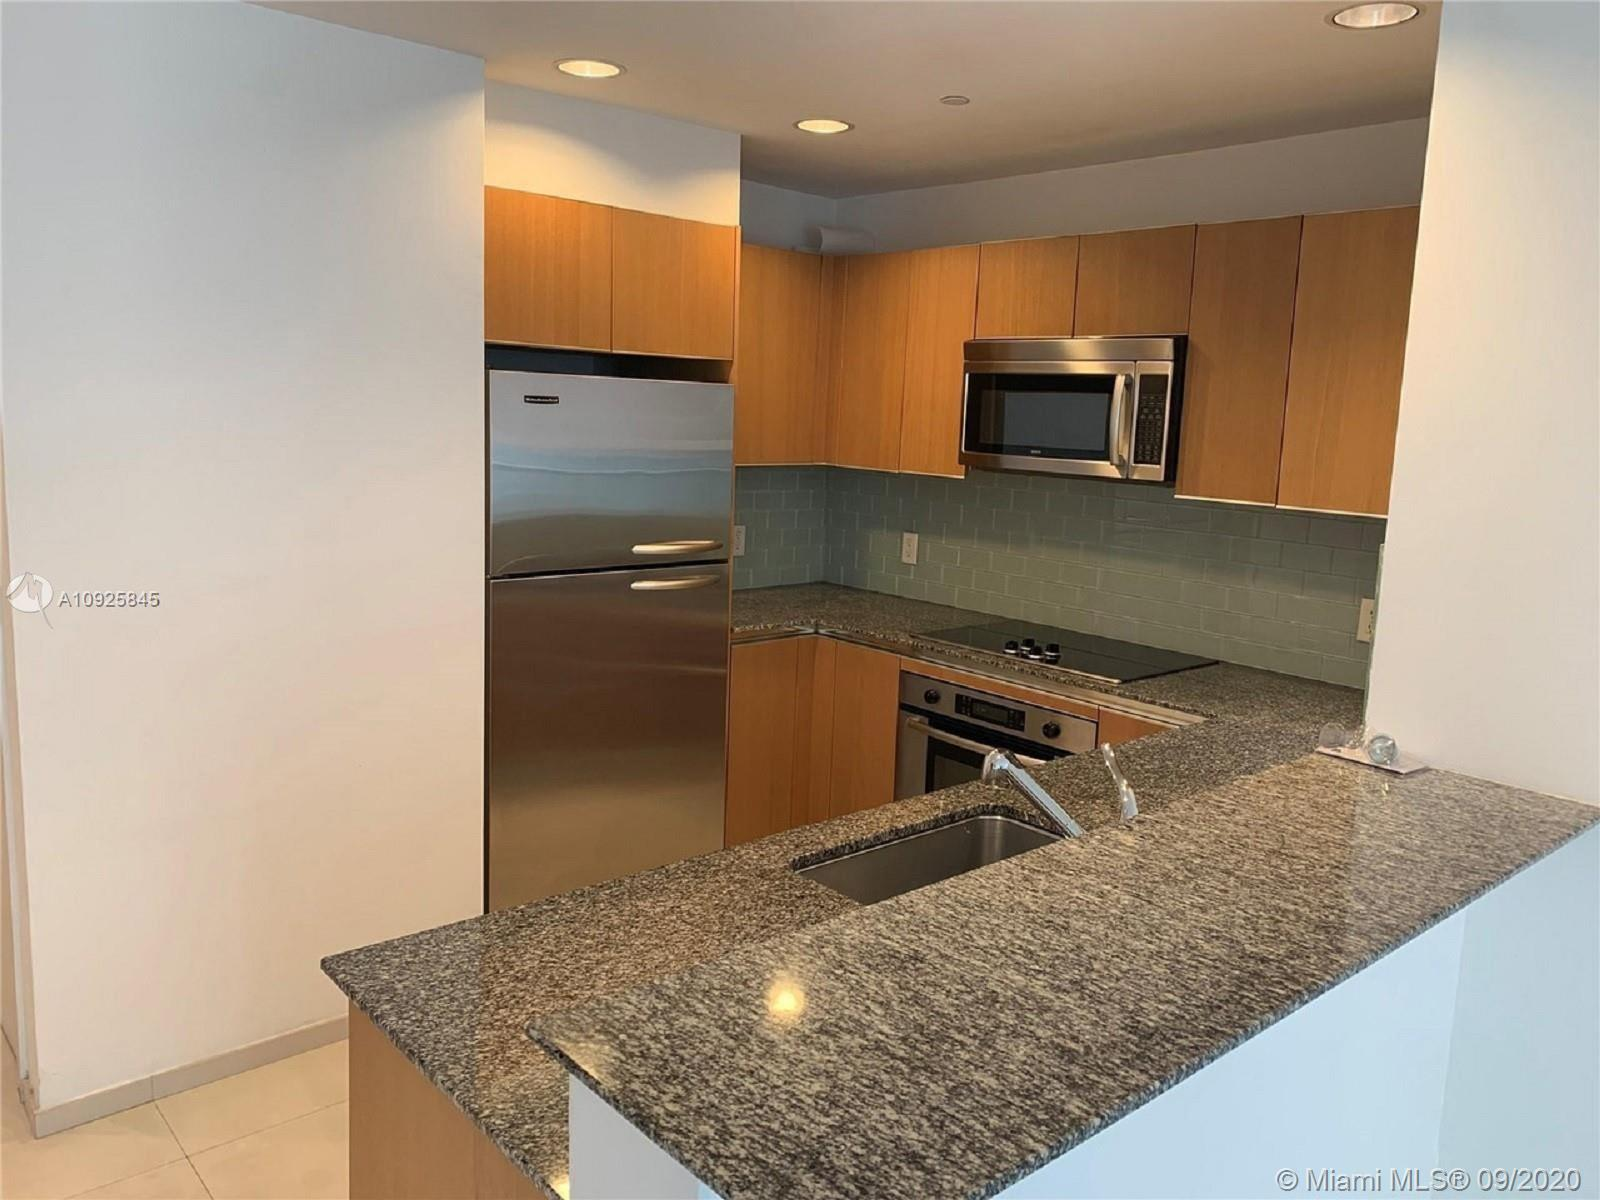 Modern Studio with great views located in the most desirable location in the heart of Brickell. Very elegant building with high end amenities, steps away from Mary Brickell and Brickell City Center. Very easy to show!